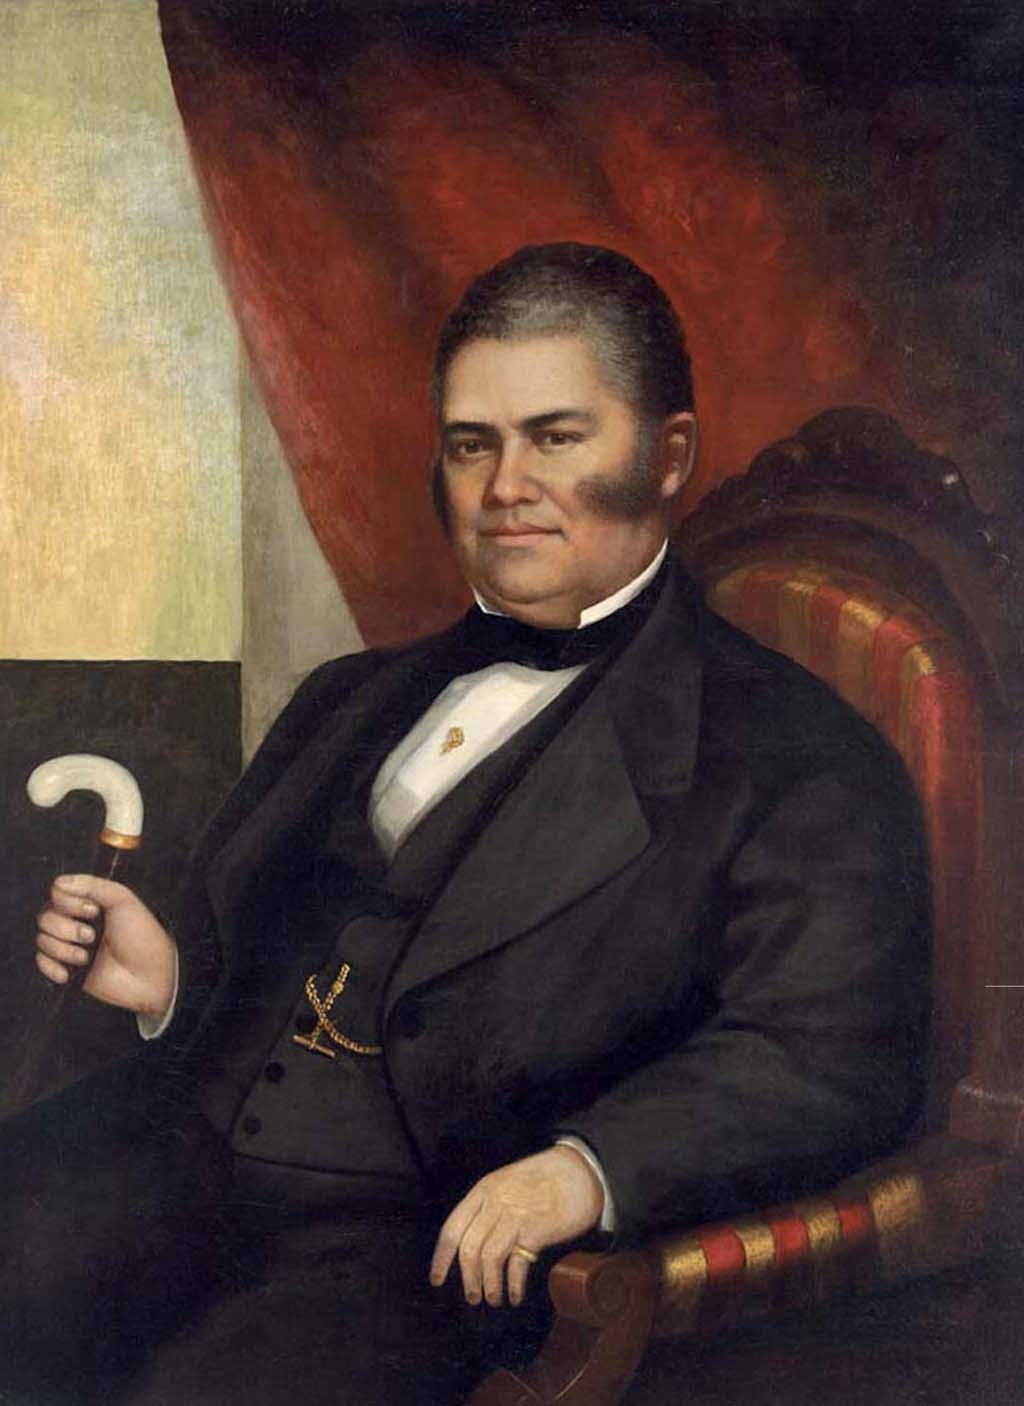 Middle-aged man with soft hooked side burns, wearing a suite. He is holding a cain with a white handle and sitting on a red and yellow cushioned wood chair.